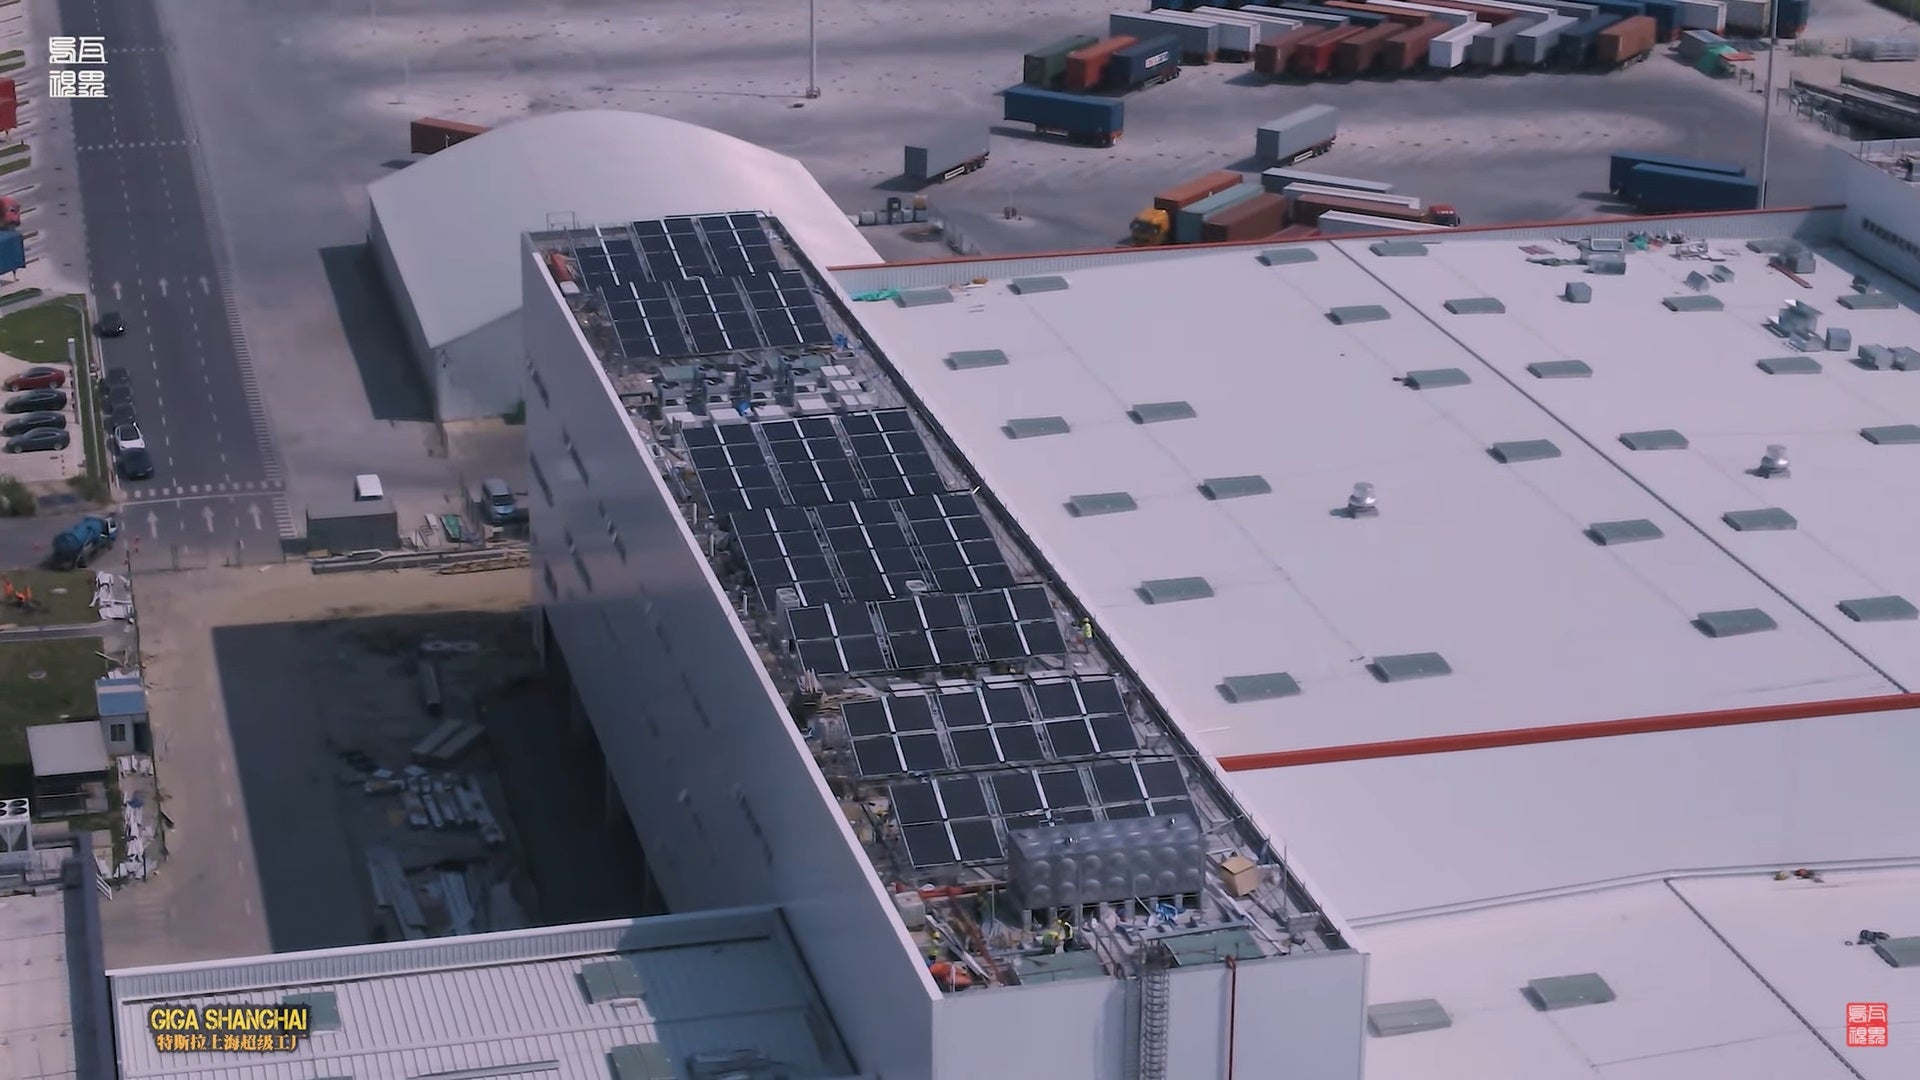 Tesla Giga Shanghai Adds Solar Panels for Sustainable Energy